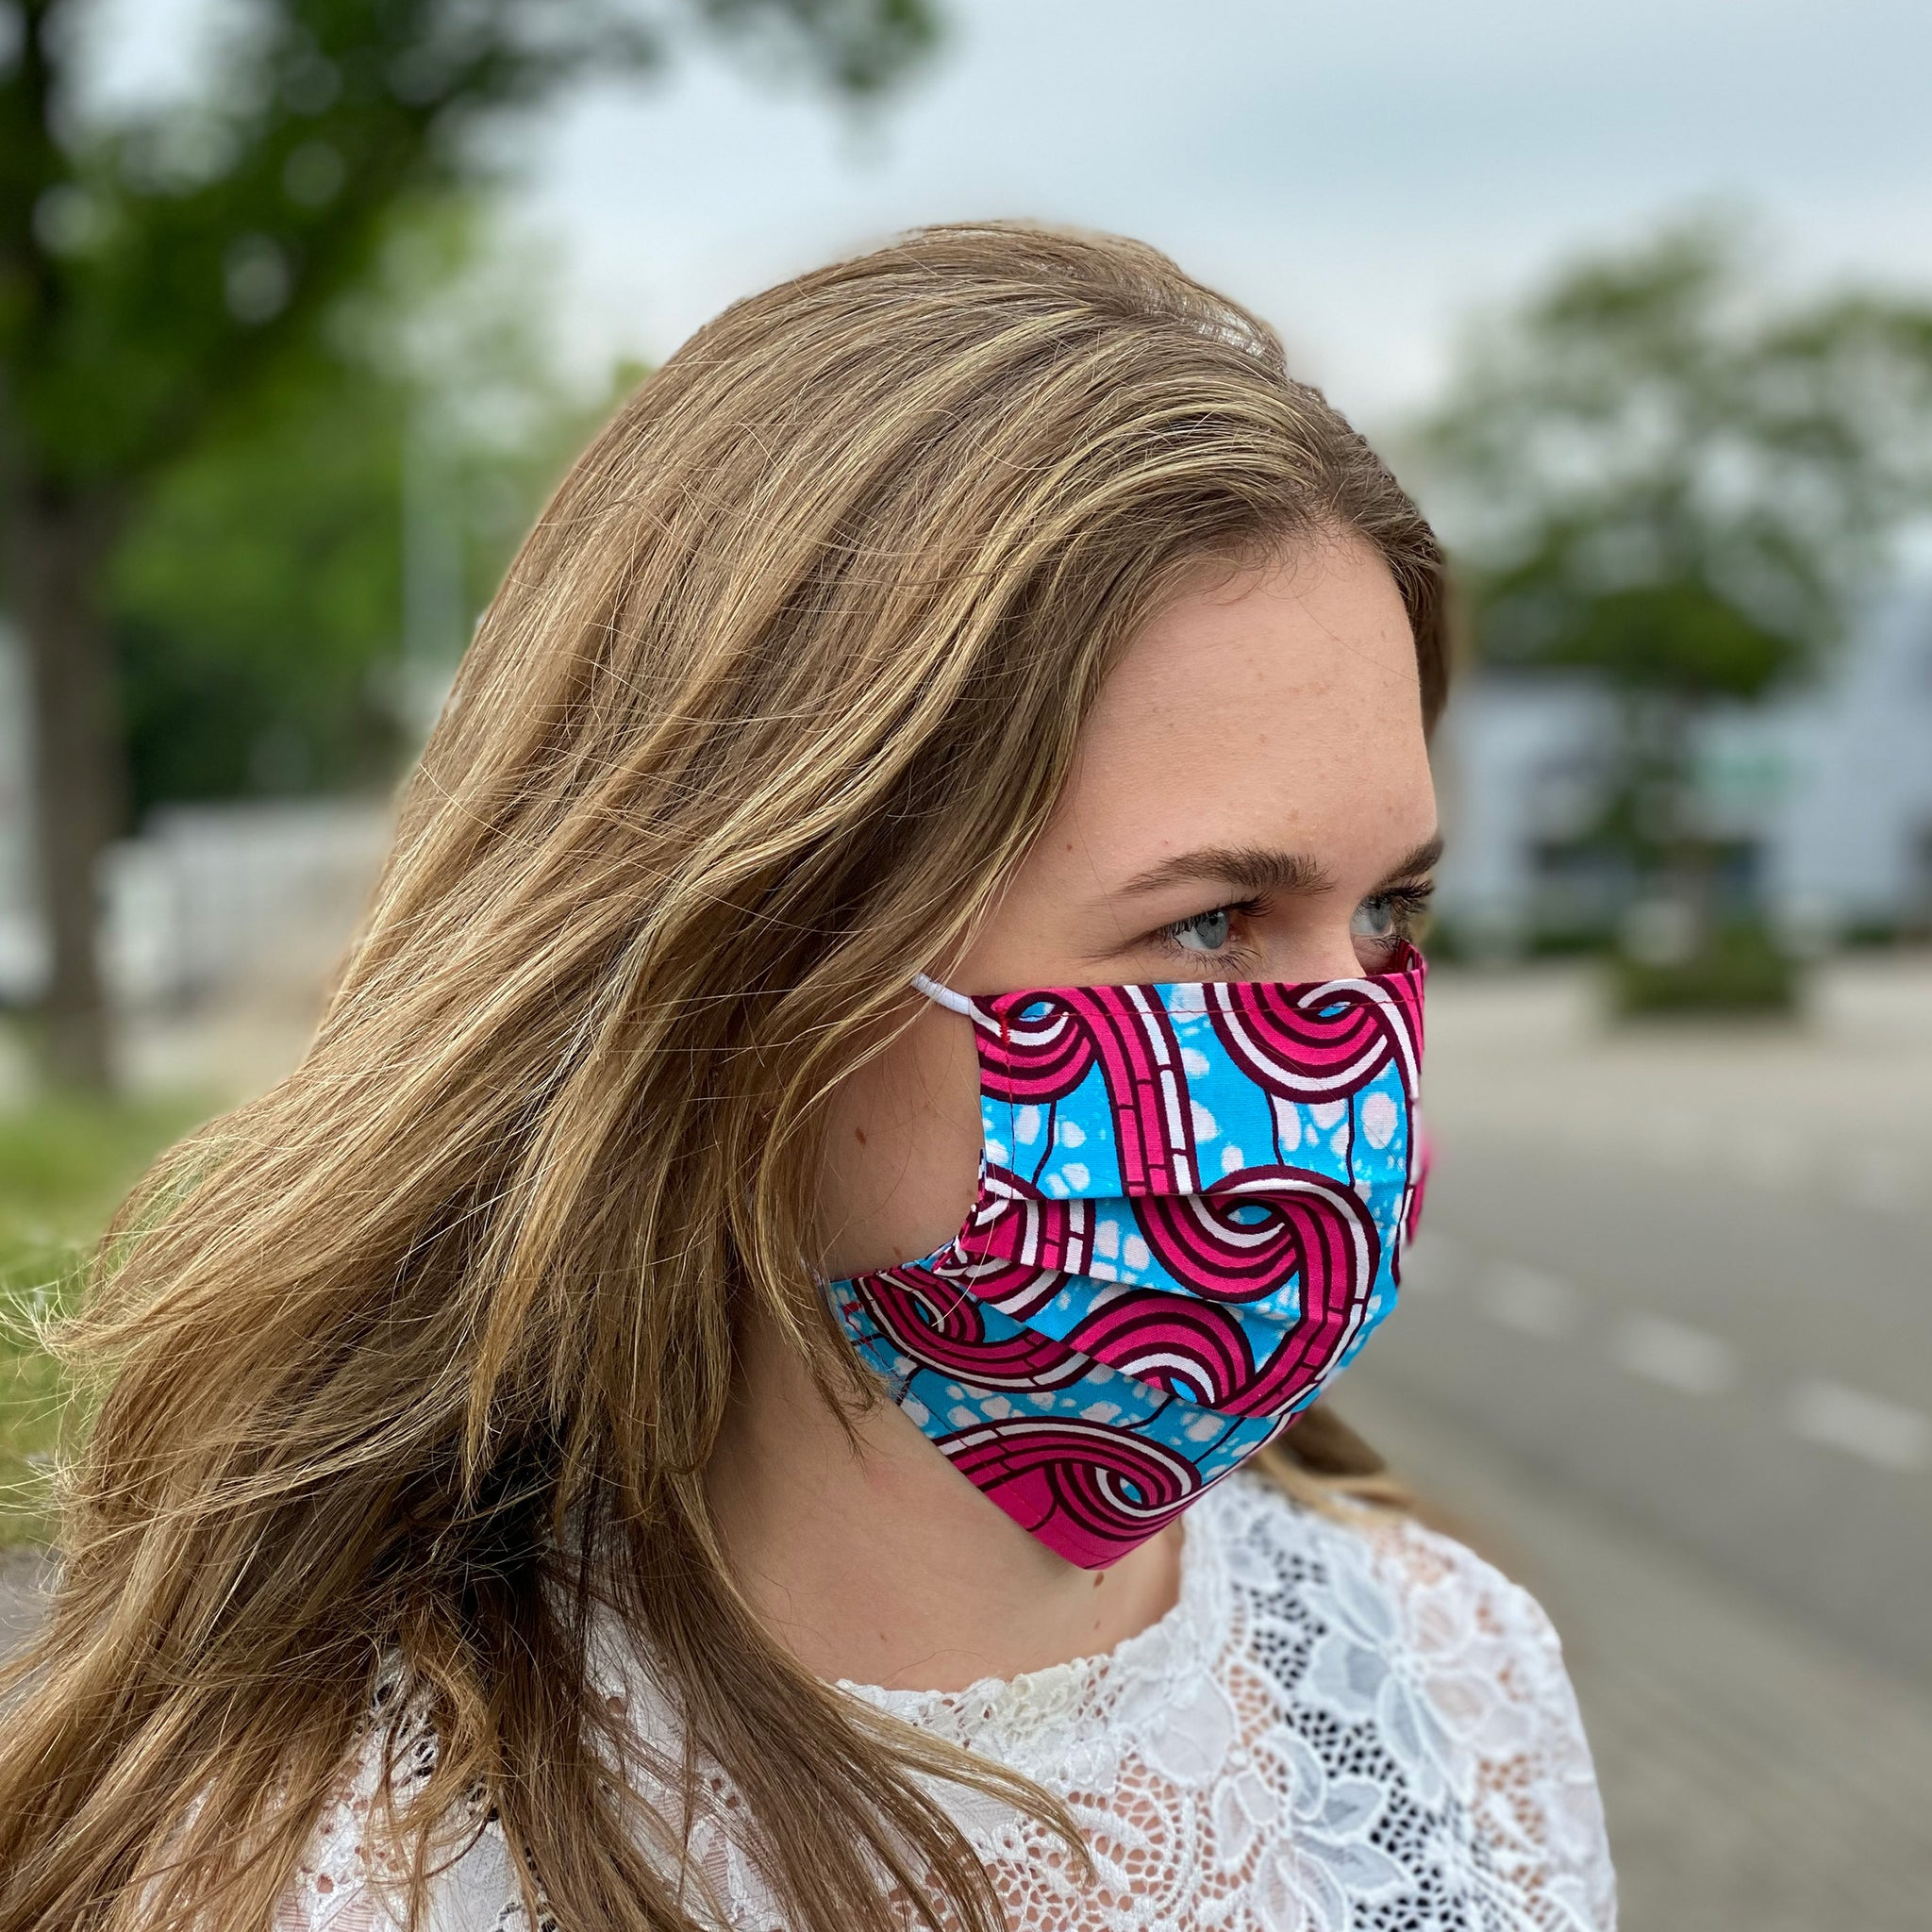 African print Mouth mask / Face mask made of 100% cotton - Pink blue heraldic